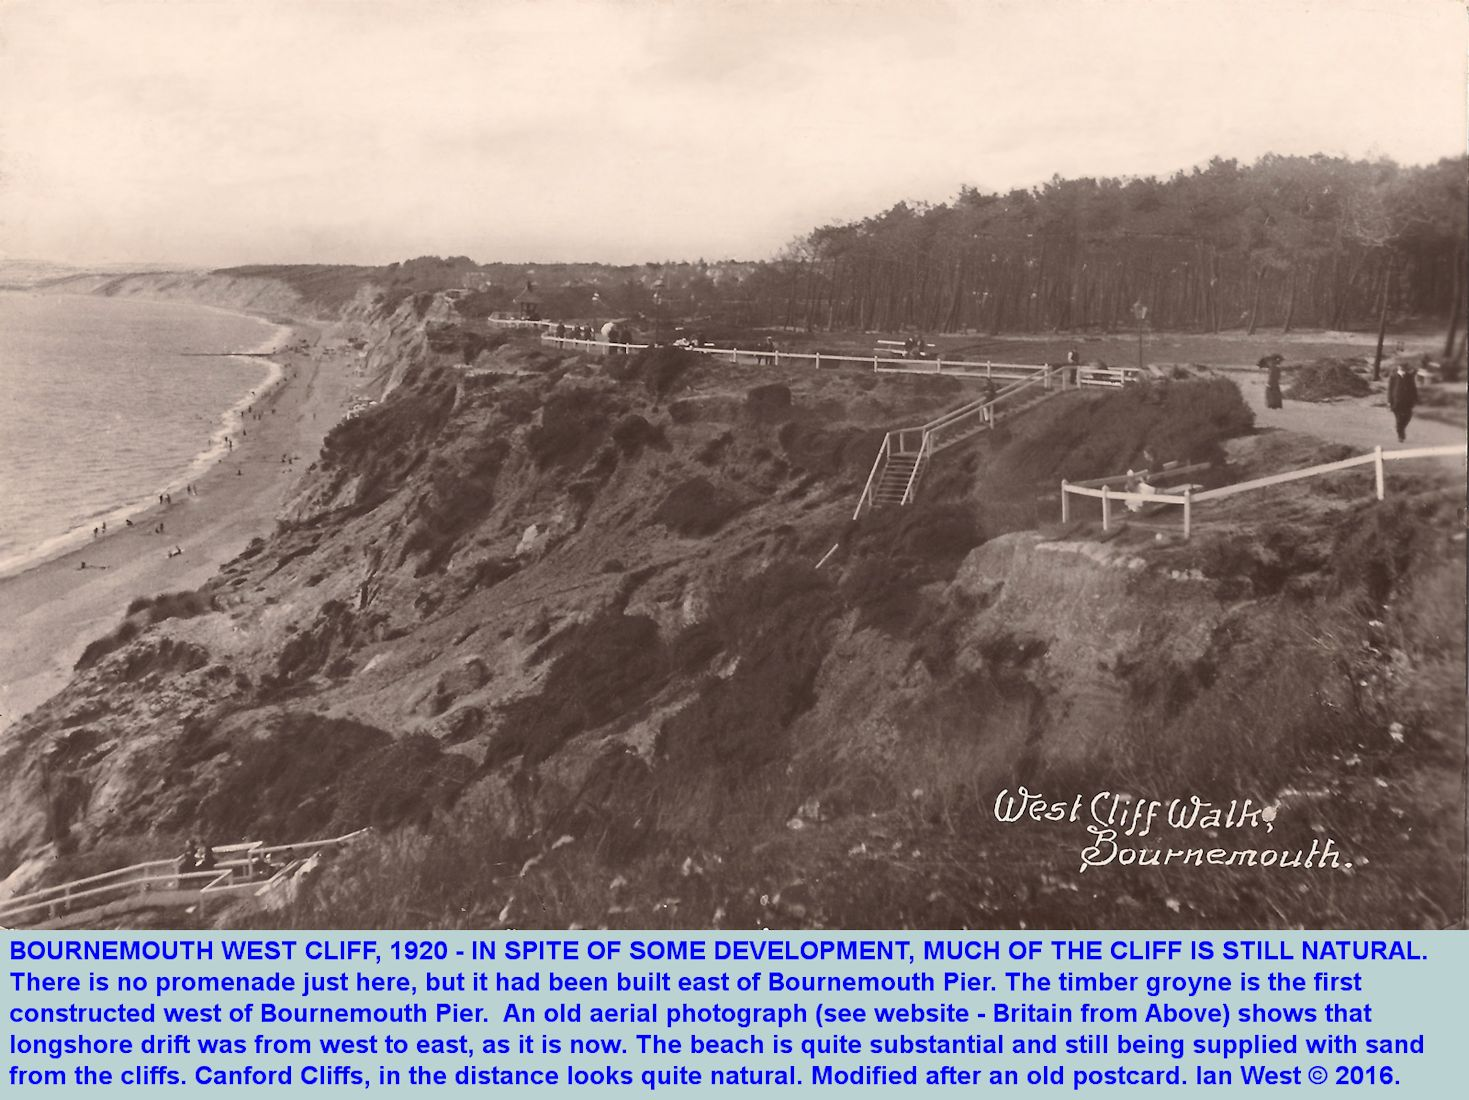 The West Cliffs of Bournemouth, Dorset, in 1920, when they were still partly in natural condition, in spite of development at Chines